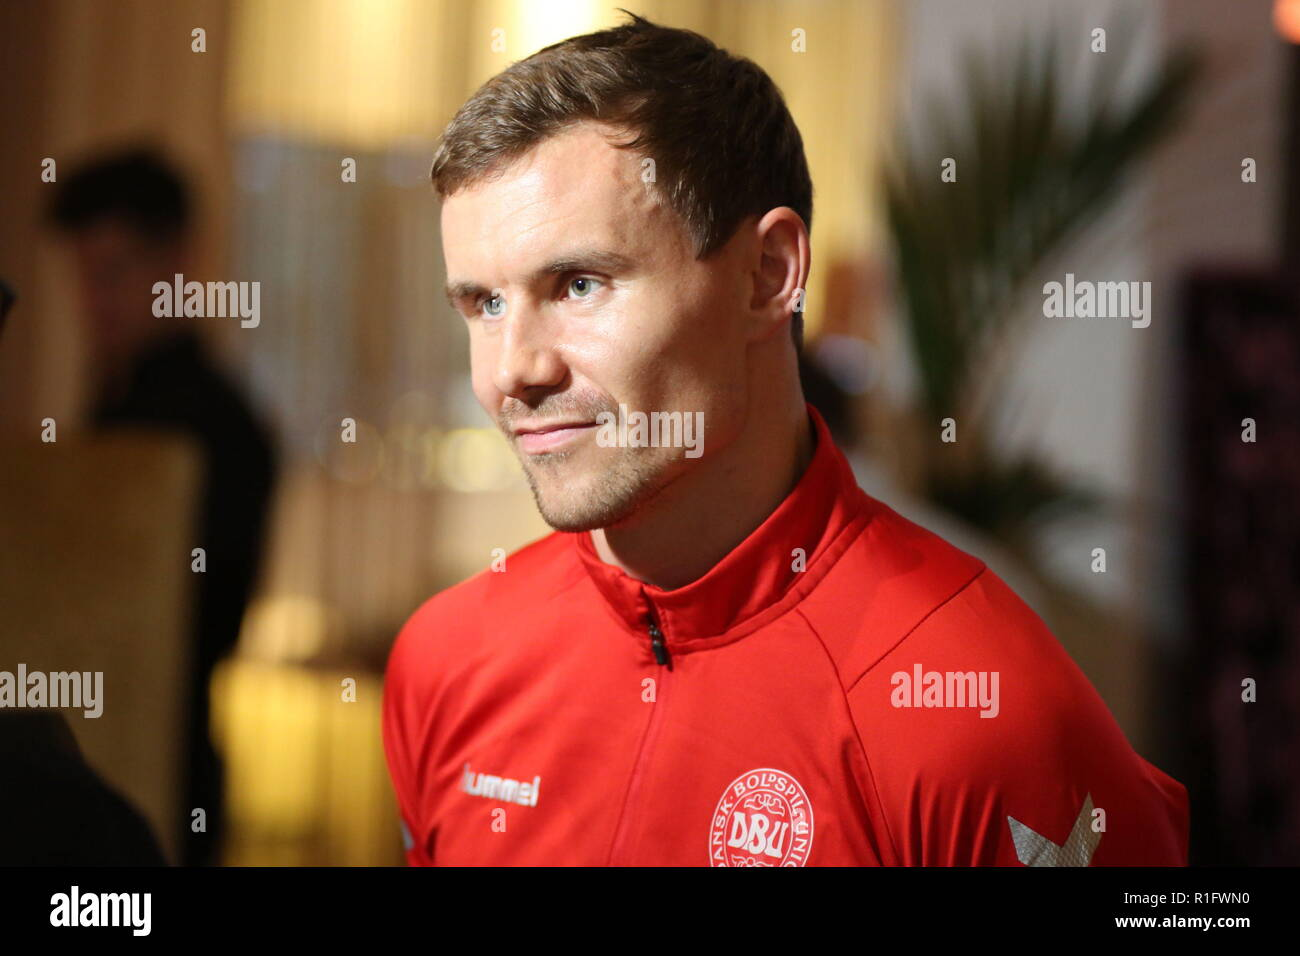 Newport, Wales, UK. 12th November, 2018. Andreas Bjelland is a Danish professional football centre back who plays for FC Copenhagen. Pre-match interview at the Celtic Manor Resort near Newport ahead of Nations League match Wales v Denmark at the Cardiff City Stadium. Credit: www.garethjohn.uk/Alamy Live News - Stock Image